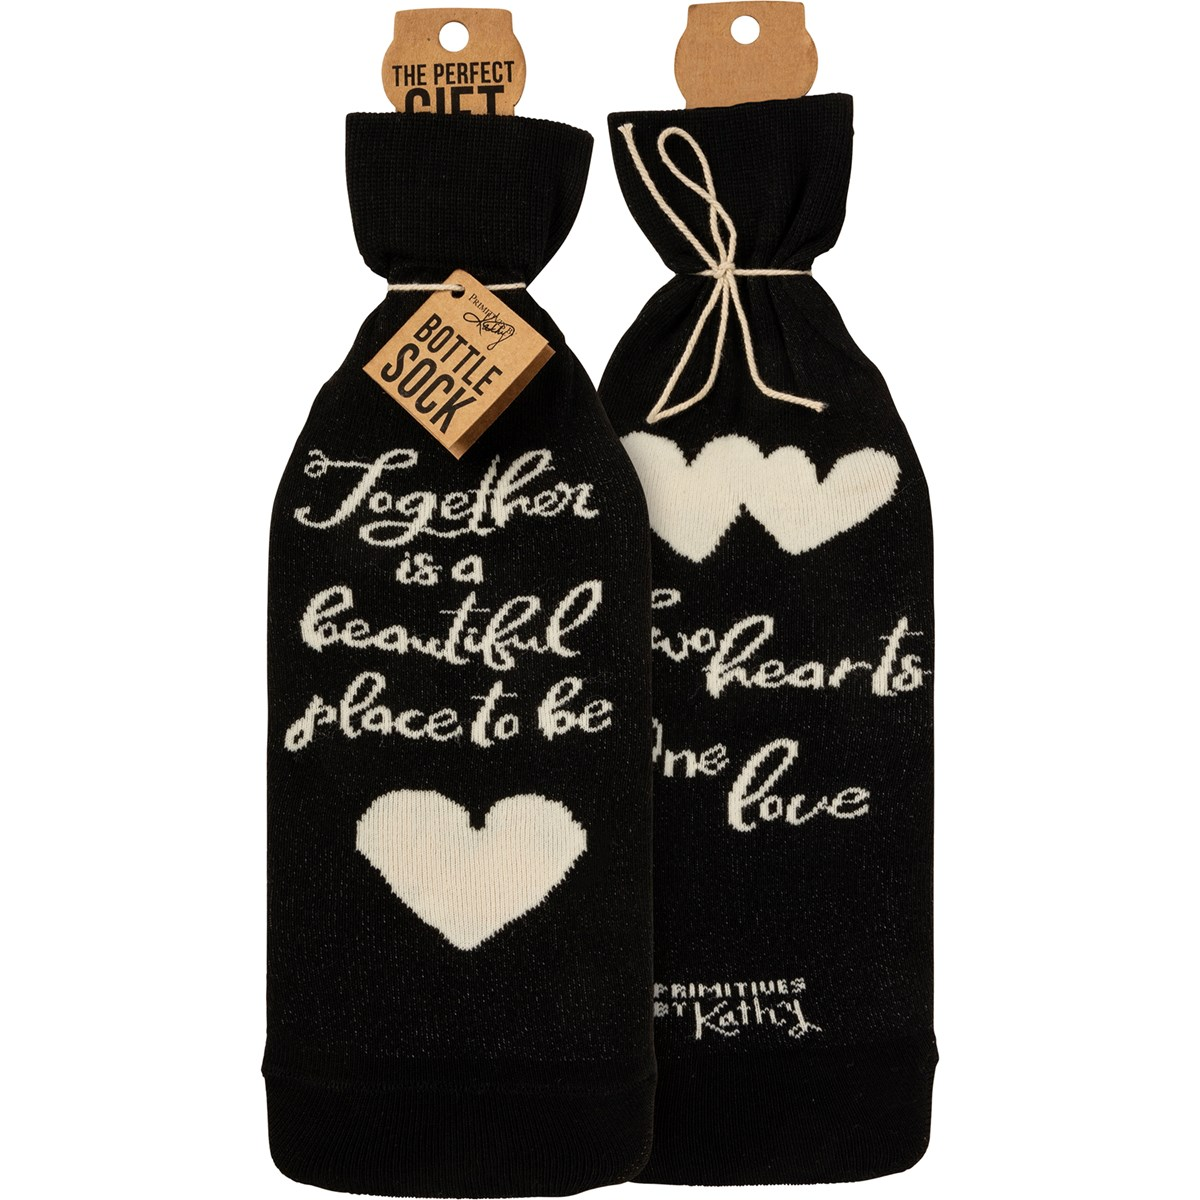 "Bottle Sock - Two Hearts One Love - 3.50"" x 11.25"", Fits 750mL to 1.5L bottles - Cotton, Nylon, Spandex"